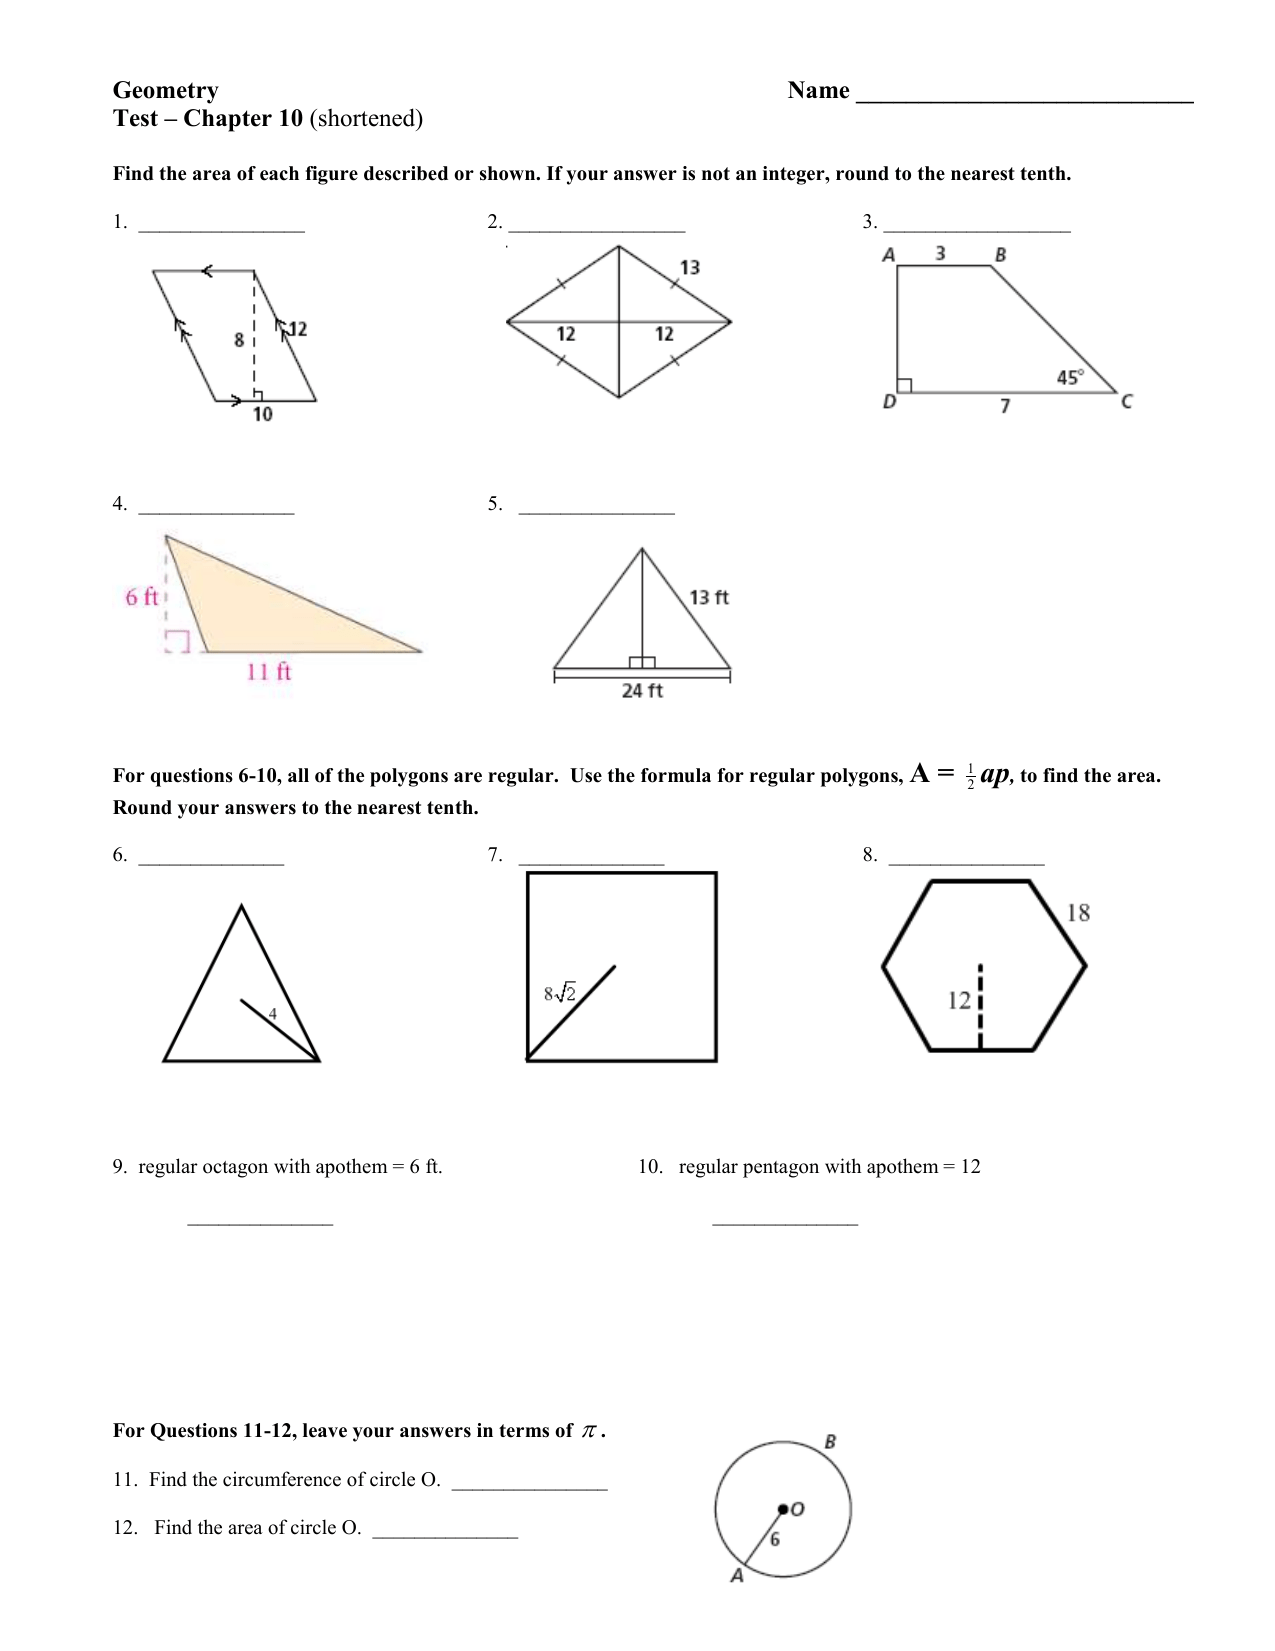 Geometry Name Test Chapter 10